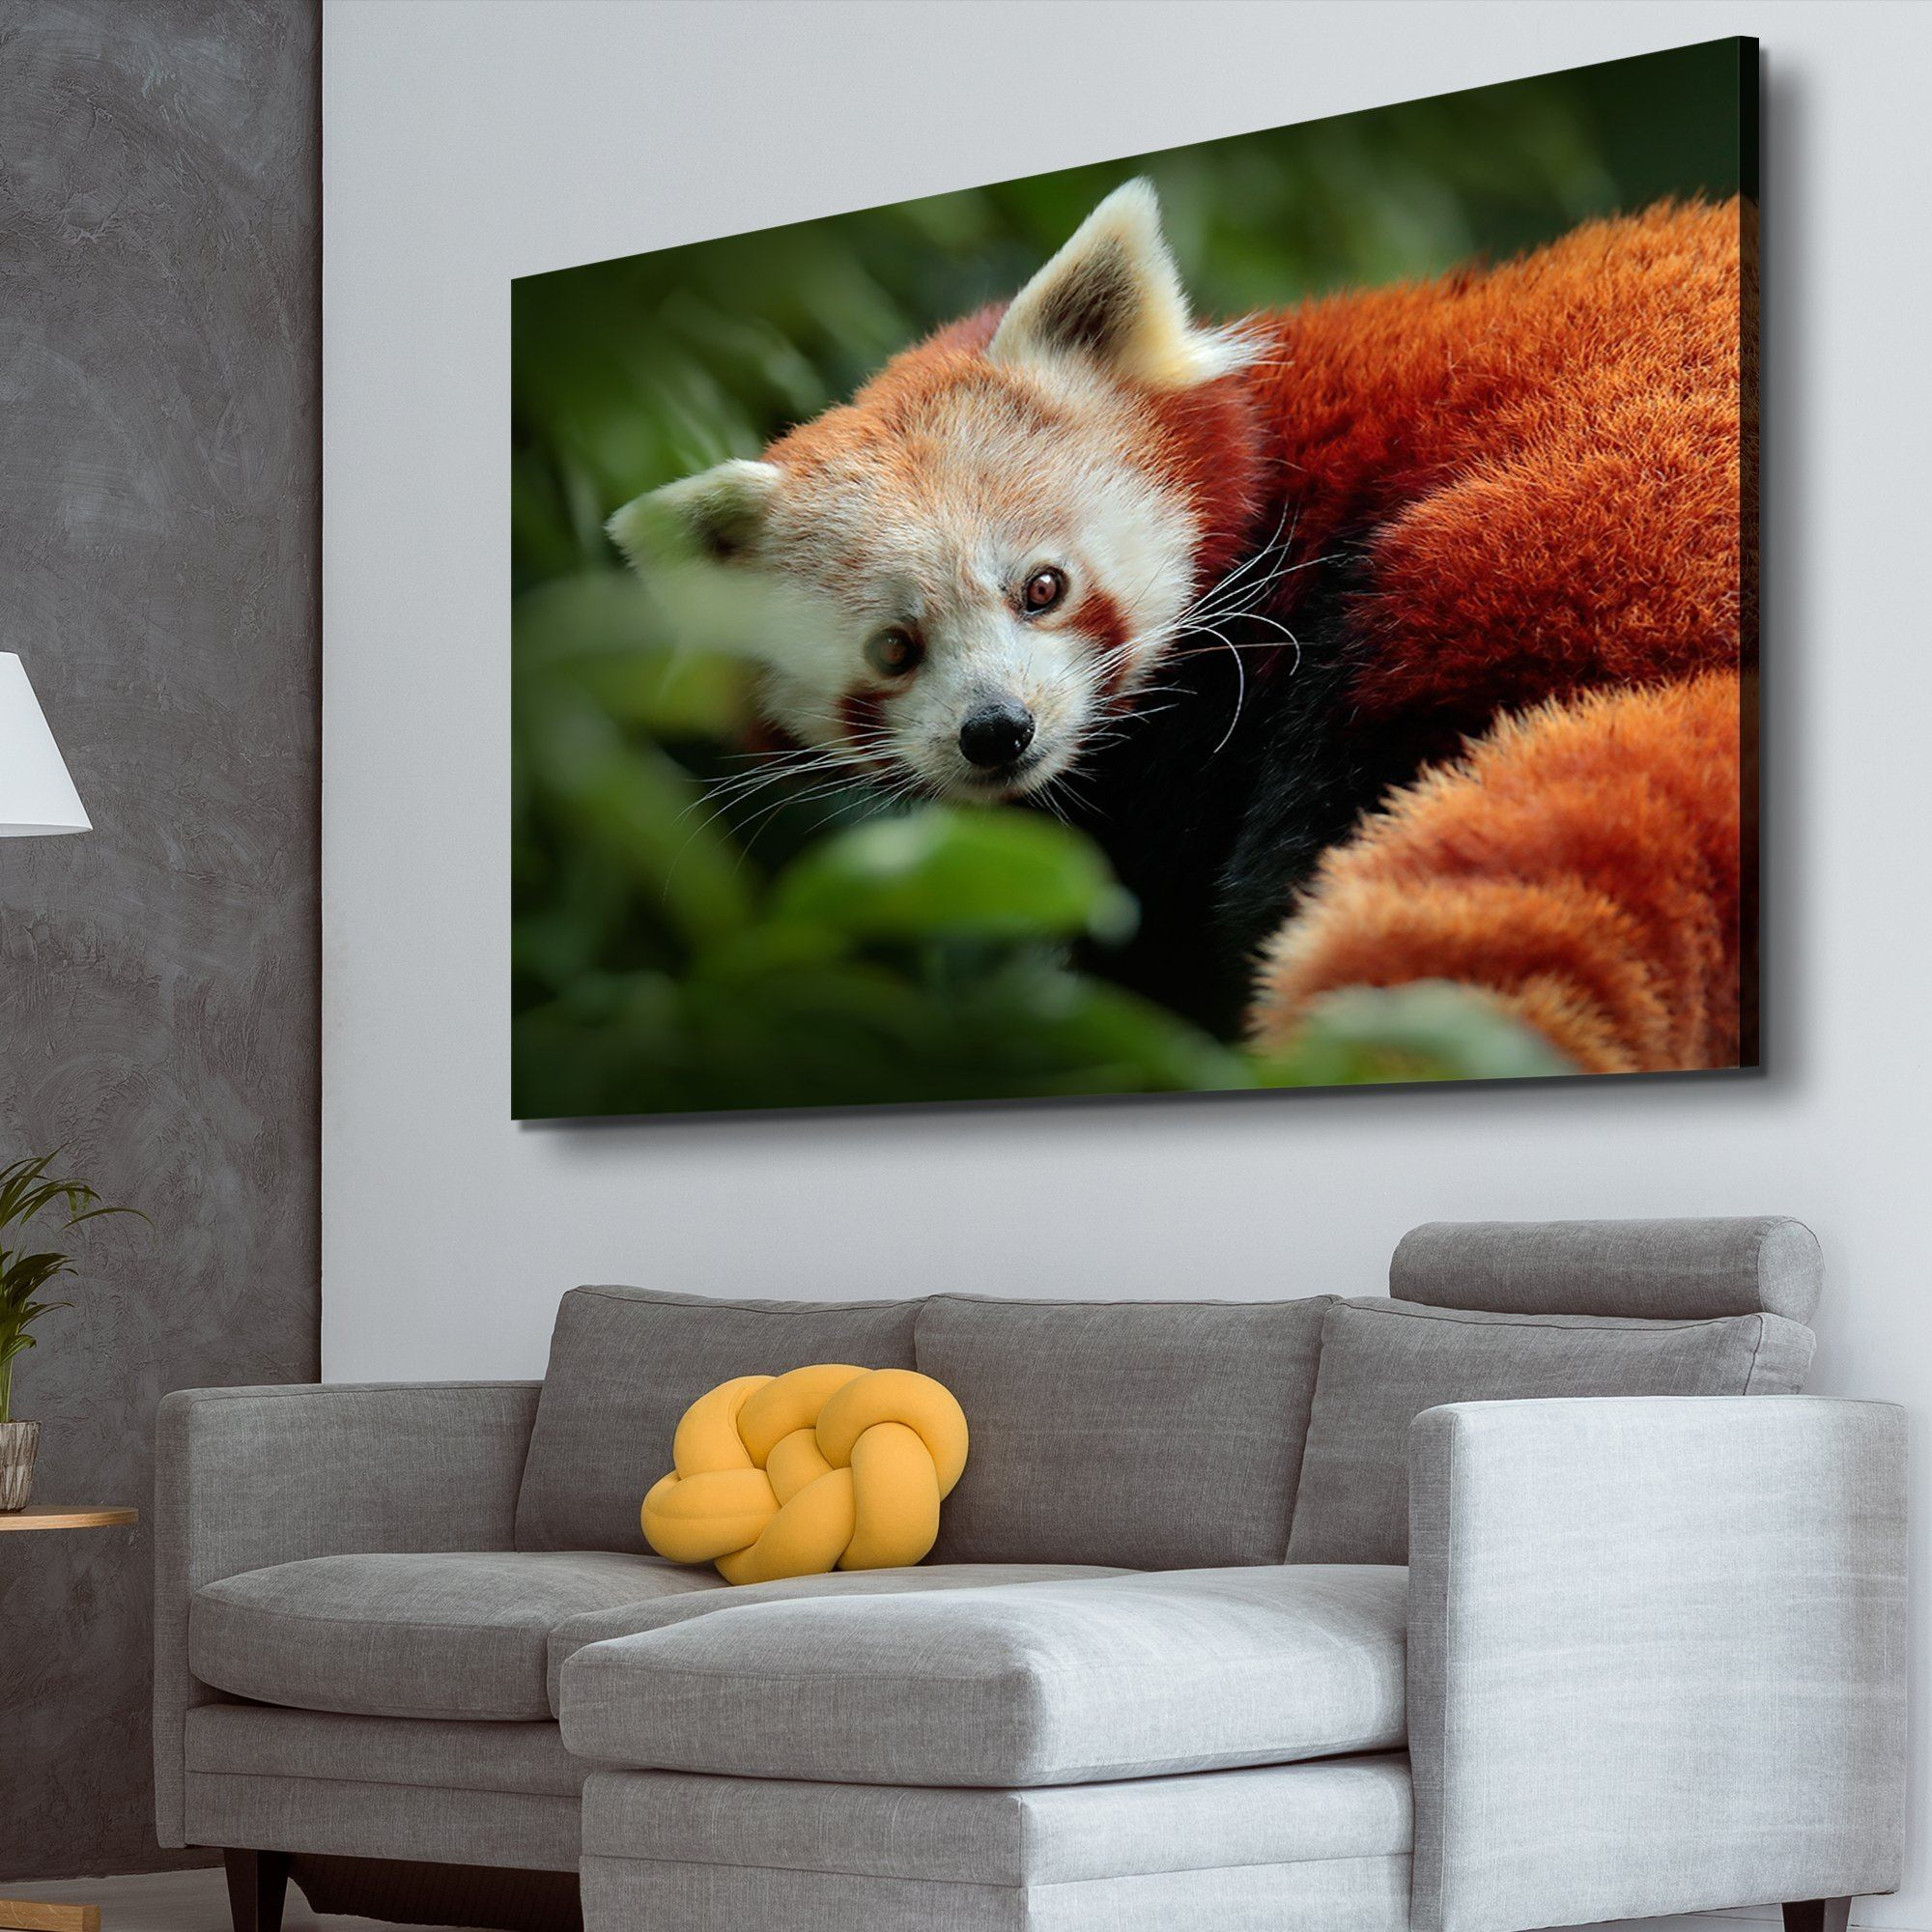 Panda from Nature wall art for the living room